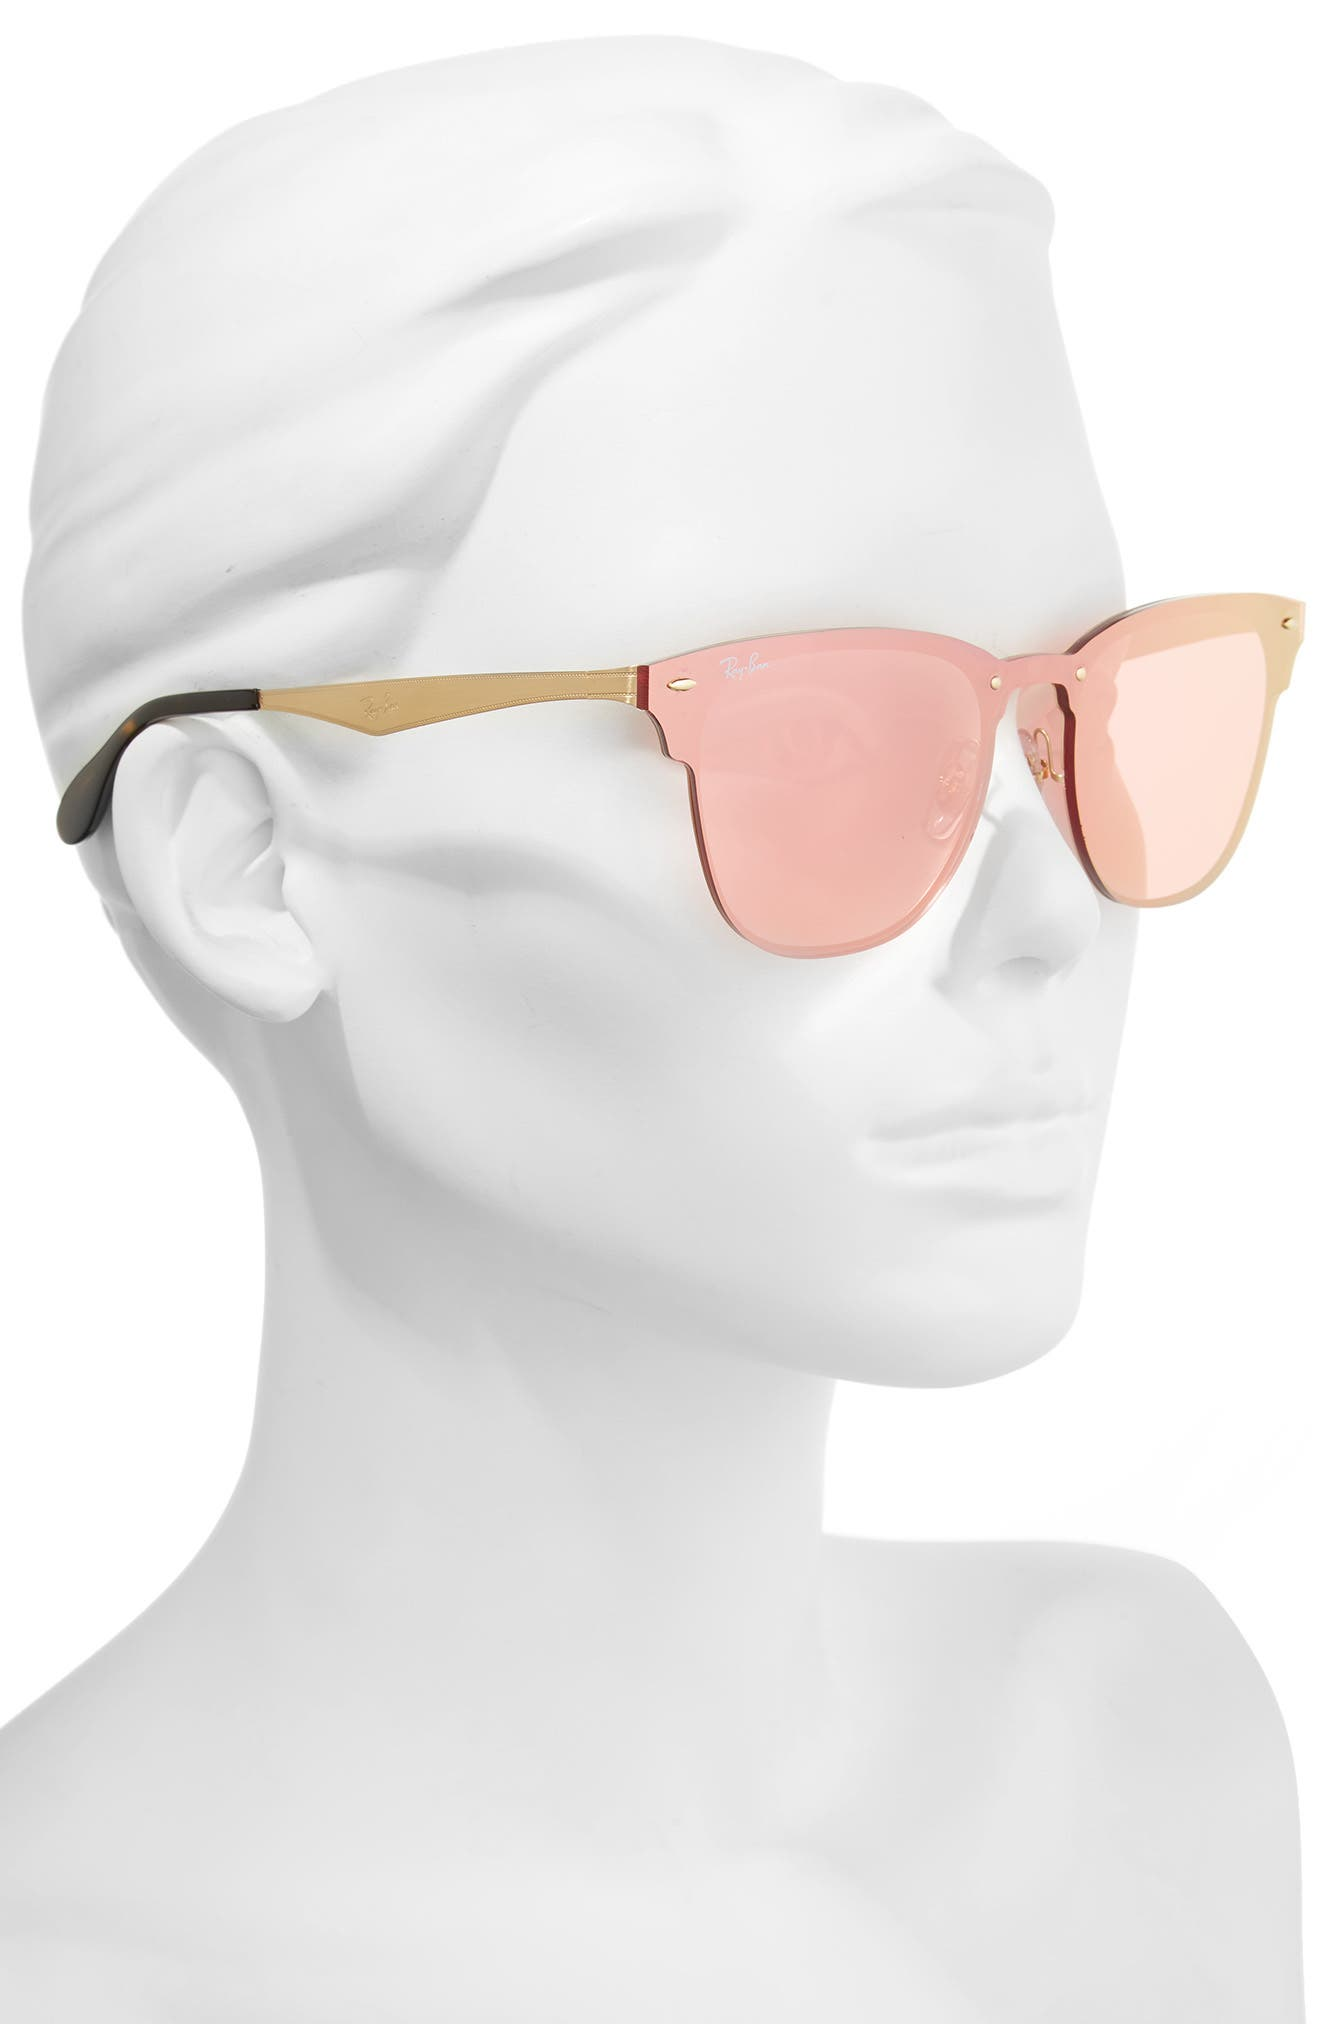 50mm Round Clubmaster Sunglasses,                             Alternate thumbnail 7, color,